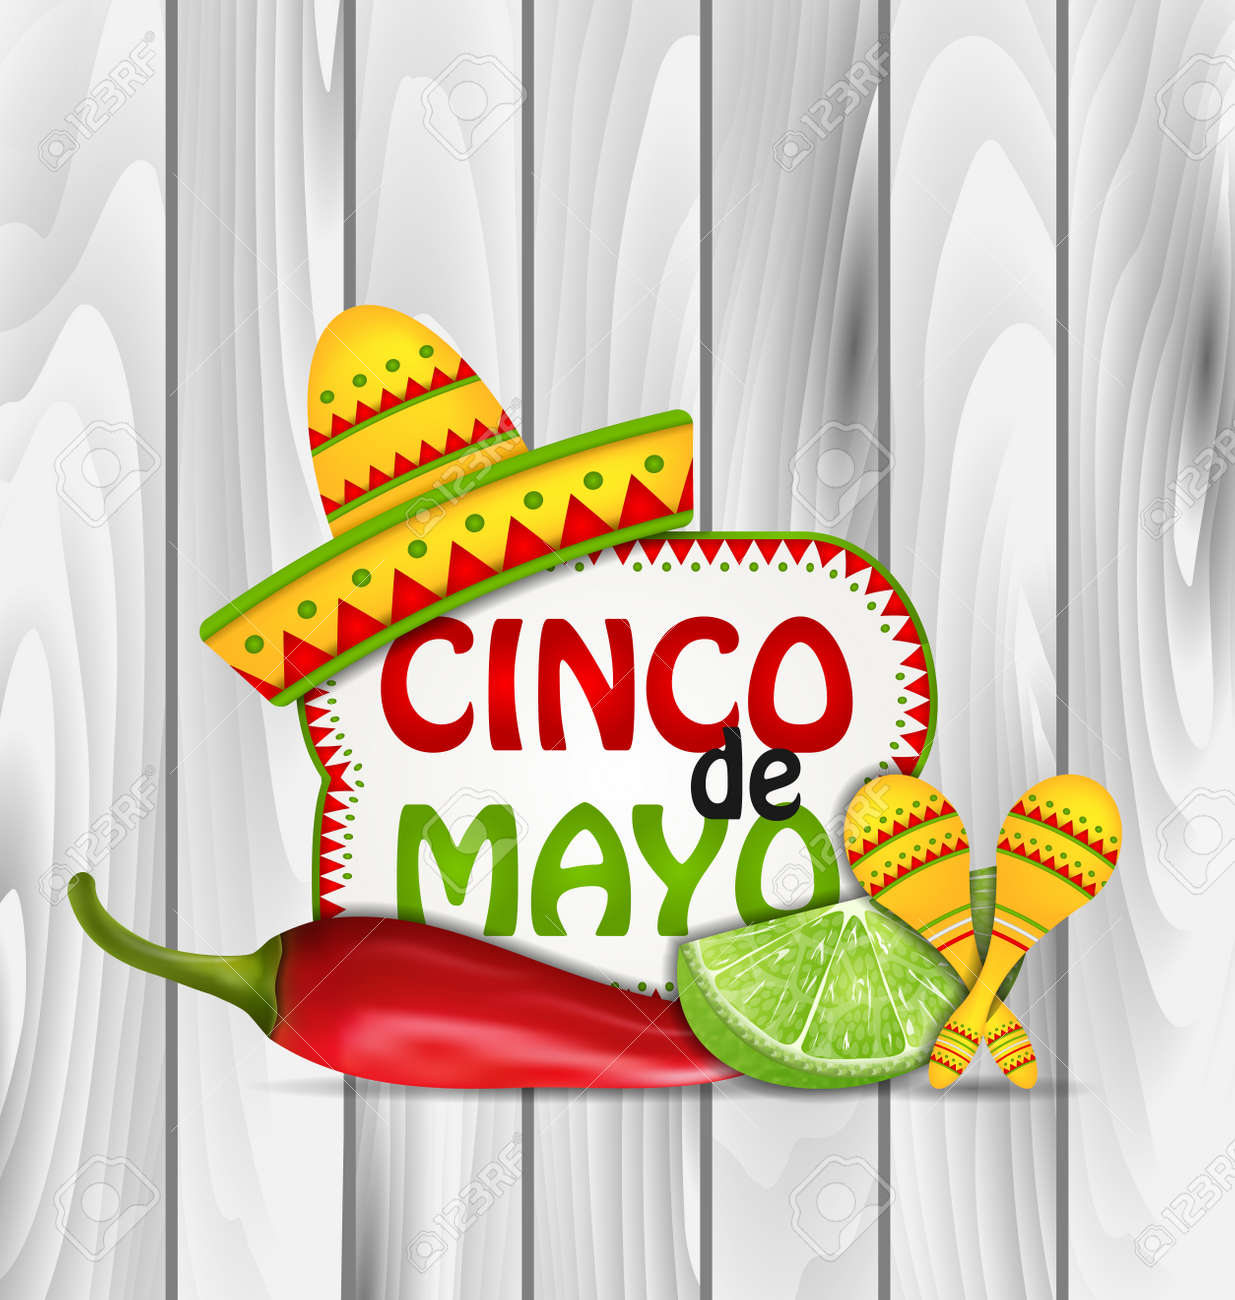 Illustration Holiday Greeting Background for Cinco De Mayo with Chili Pepper, Sombrero Hat, Maracas, Piece of Lime - Vector - 55157086